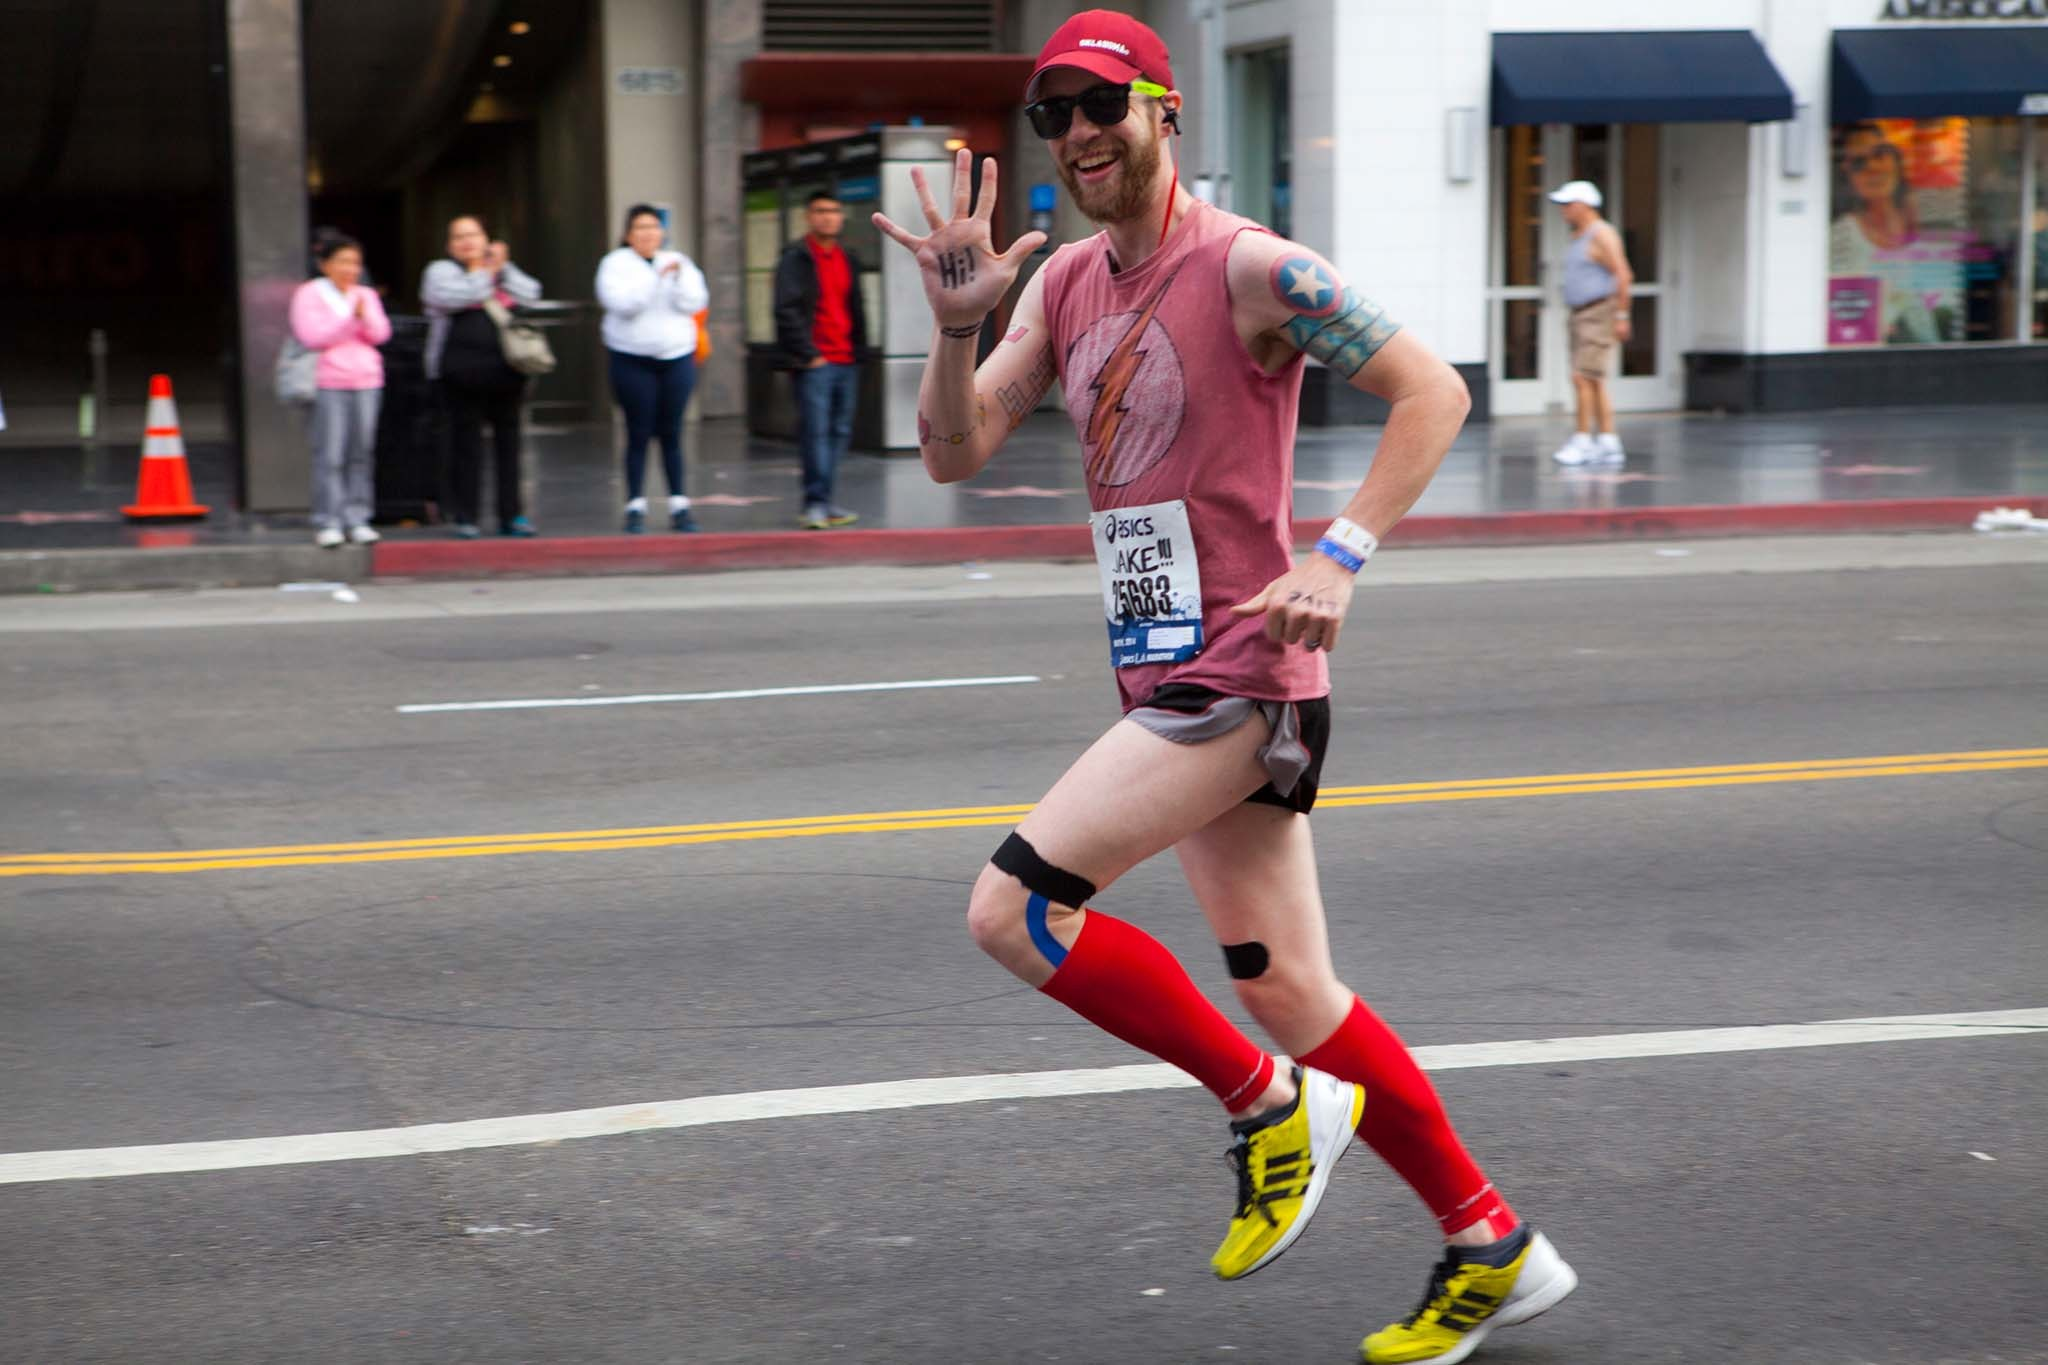 5 reasons singles should watch the LA Marathon